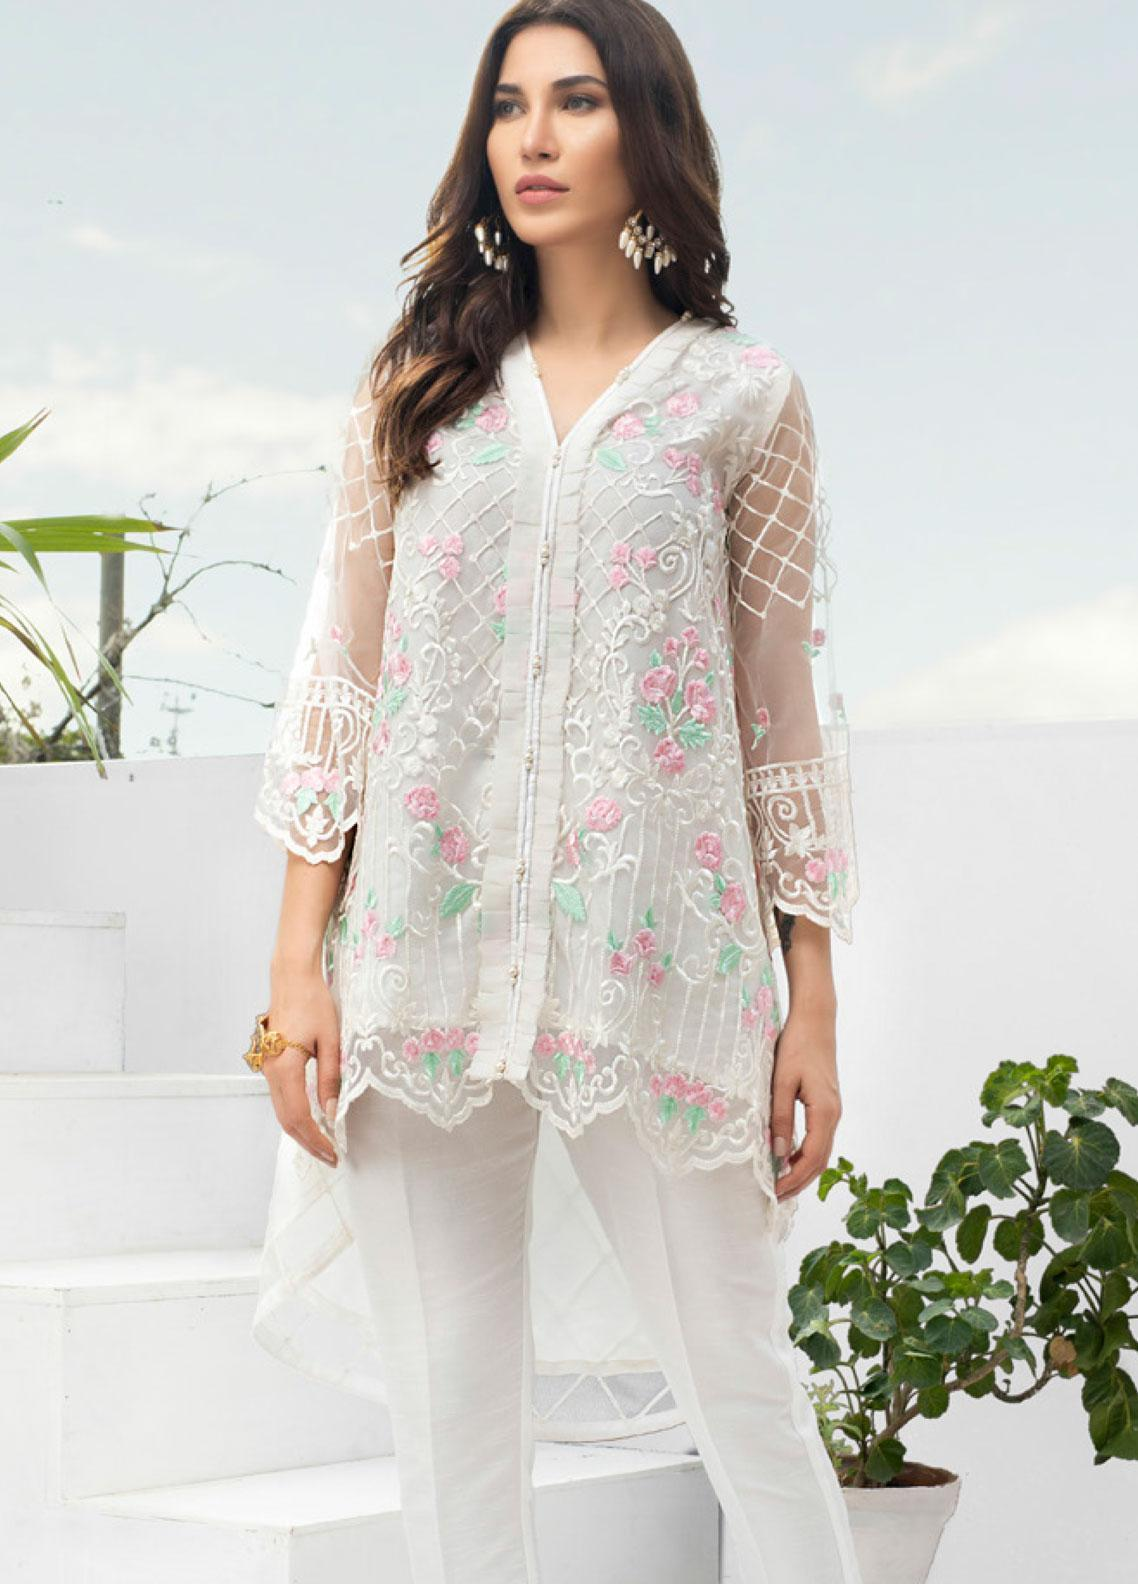 Azure Embroidered Zari Net Unstitched Kurties AZU19-E3 01 SNOWFLAKE SWIRLS - Luxury Formal Collection